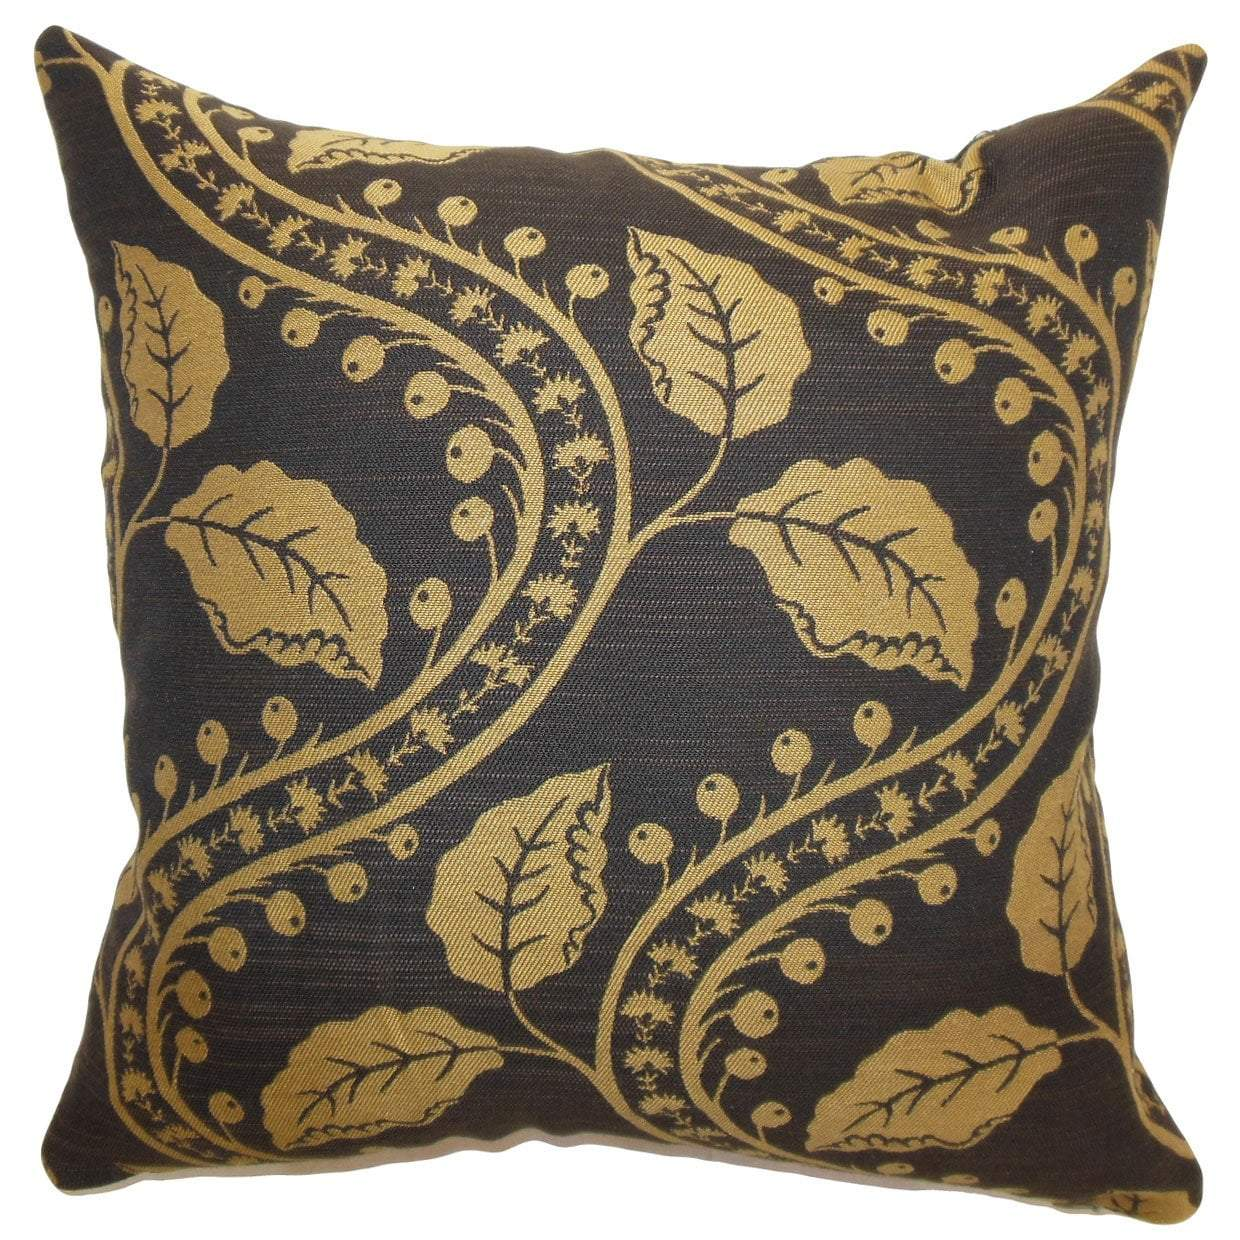 Black Cotton Floral Traditional Throw Pillow Cover